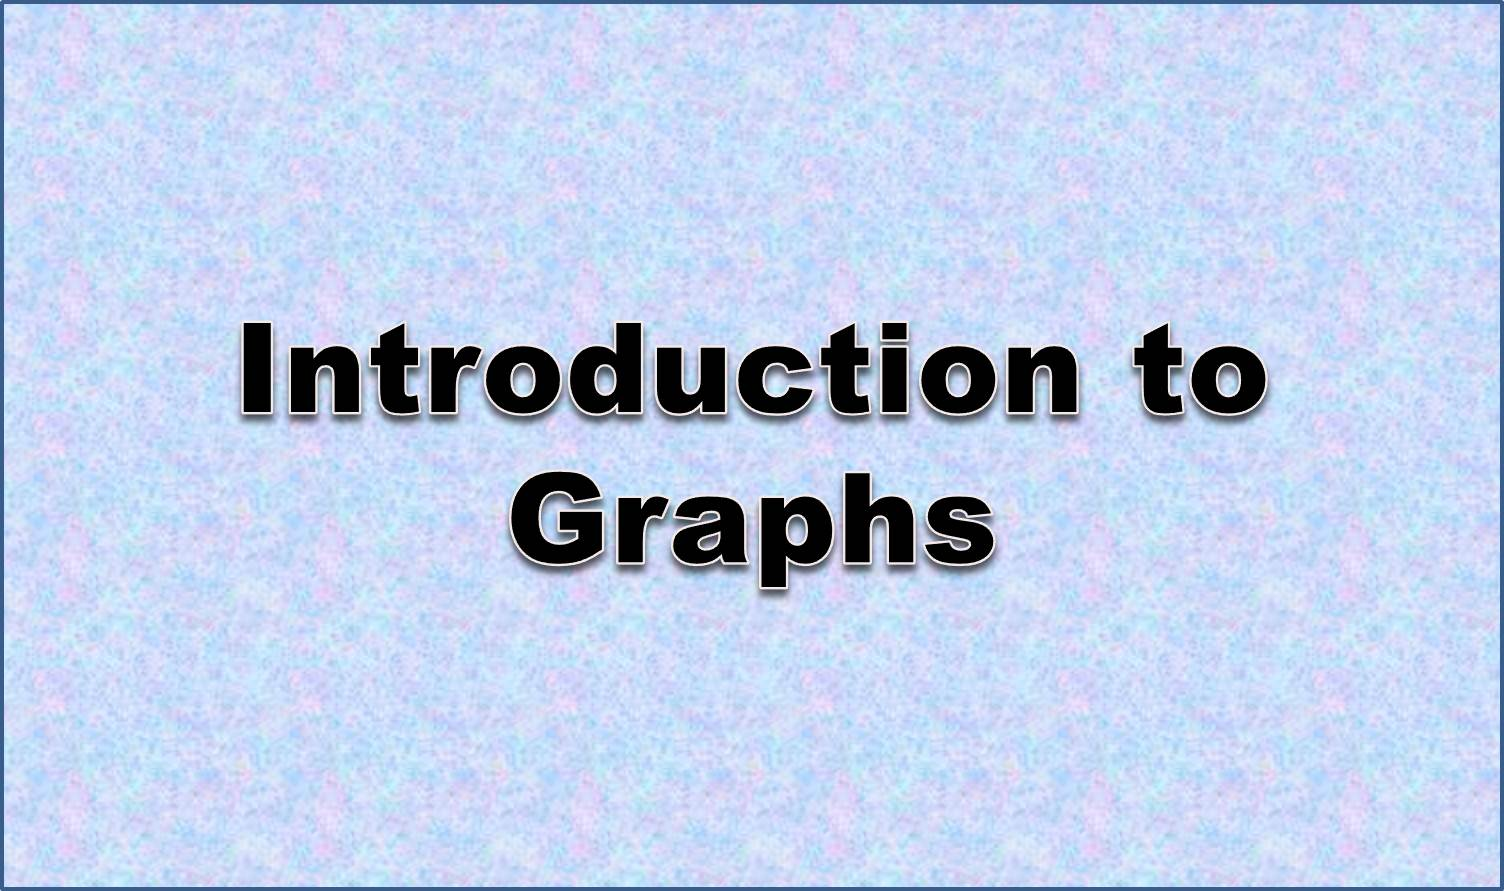 http://study.aisectonline.com/images/Dependent and independent variables-graphing.jpg